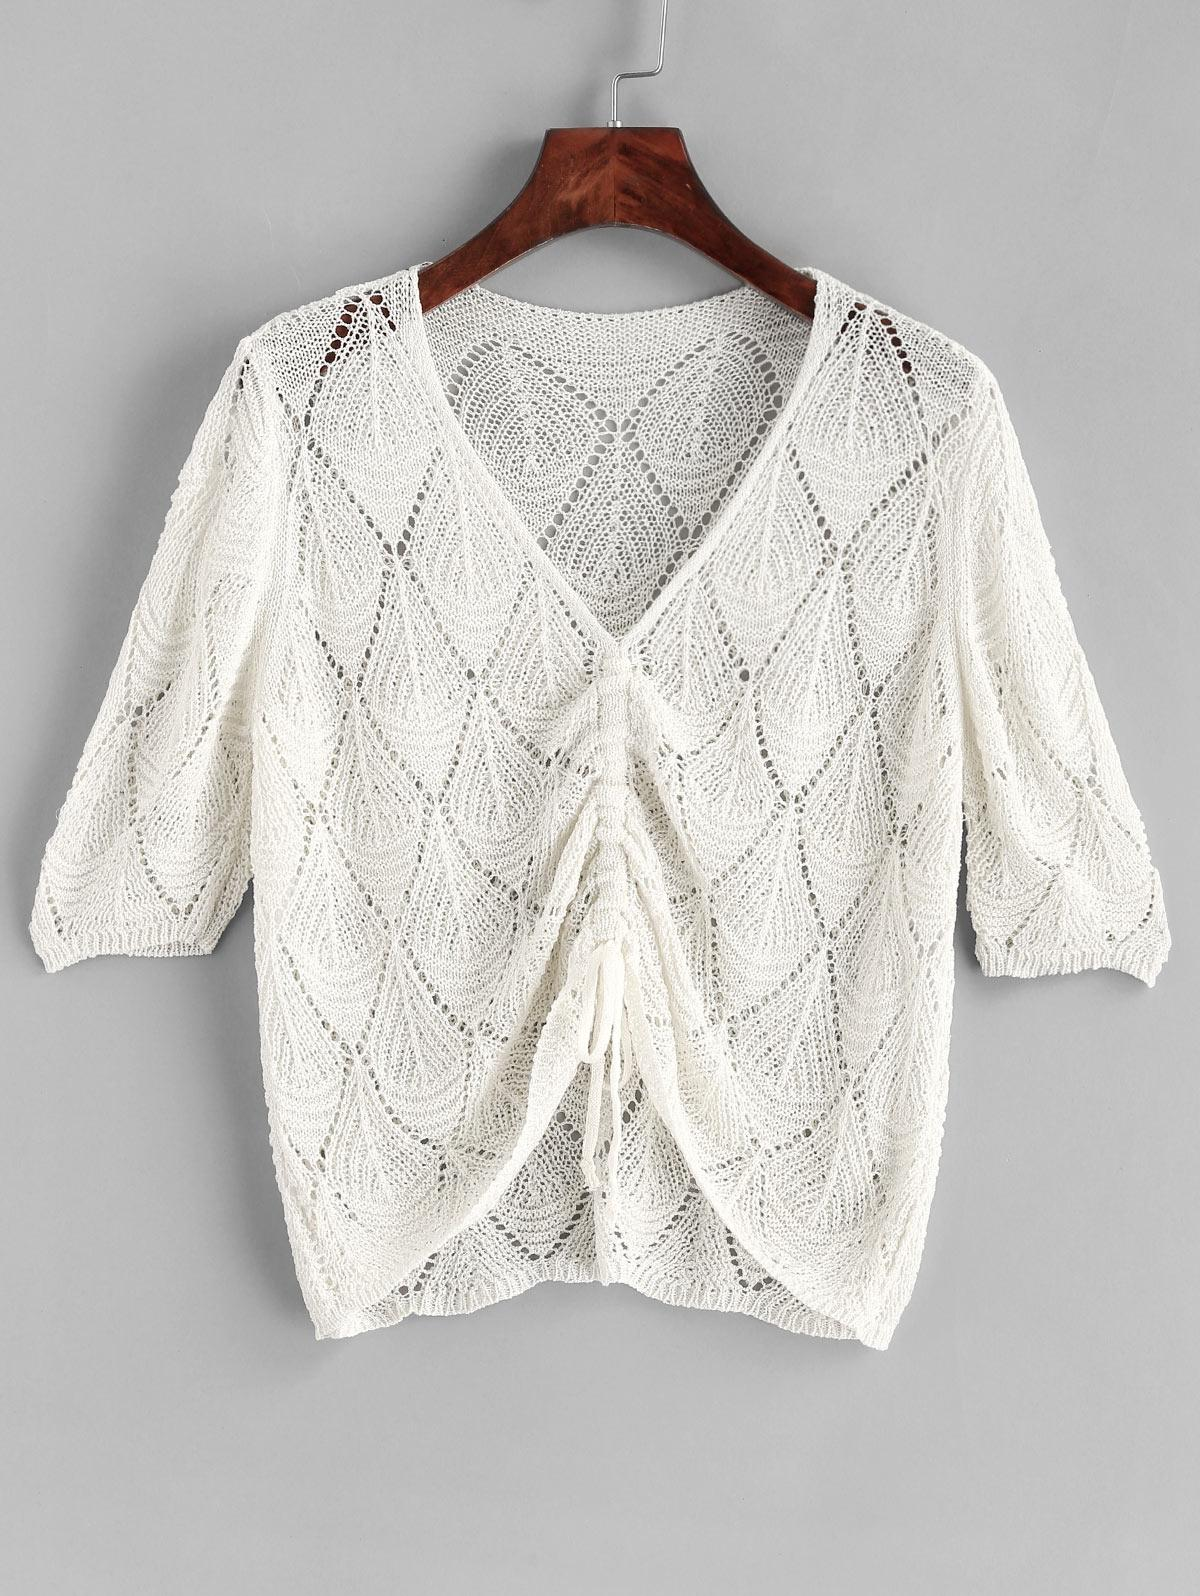 Crochet Cinched V Neck Cover Up Top, White